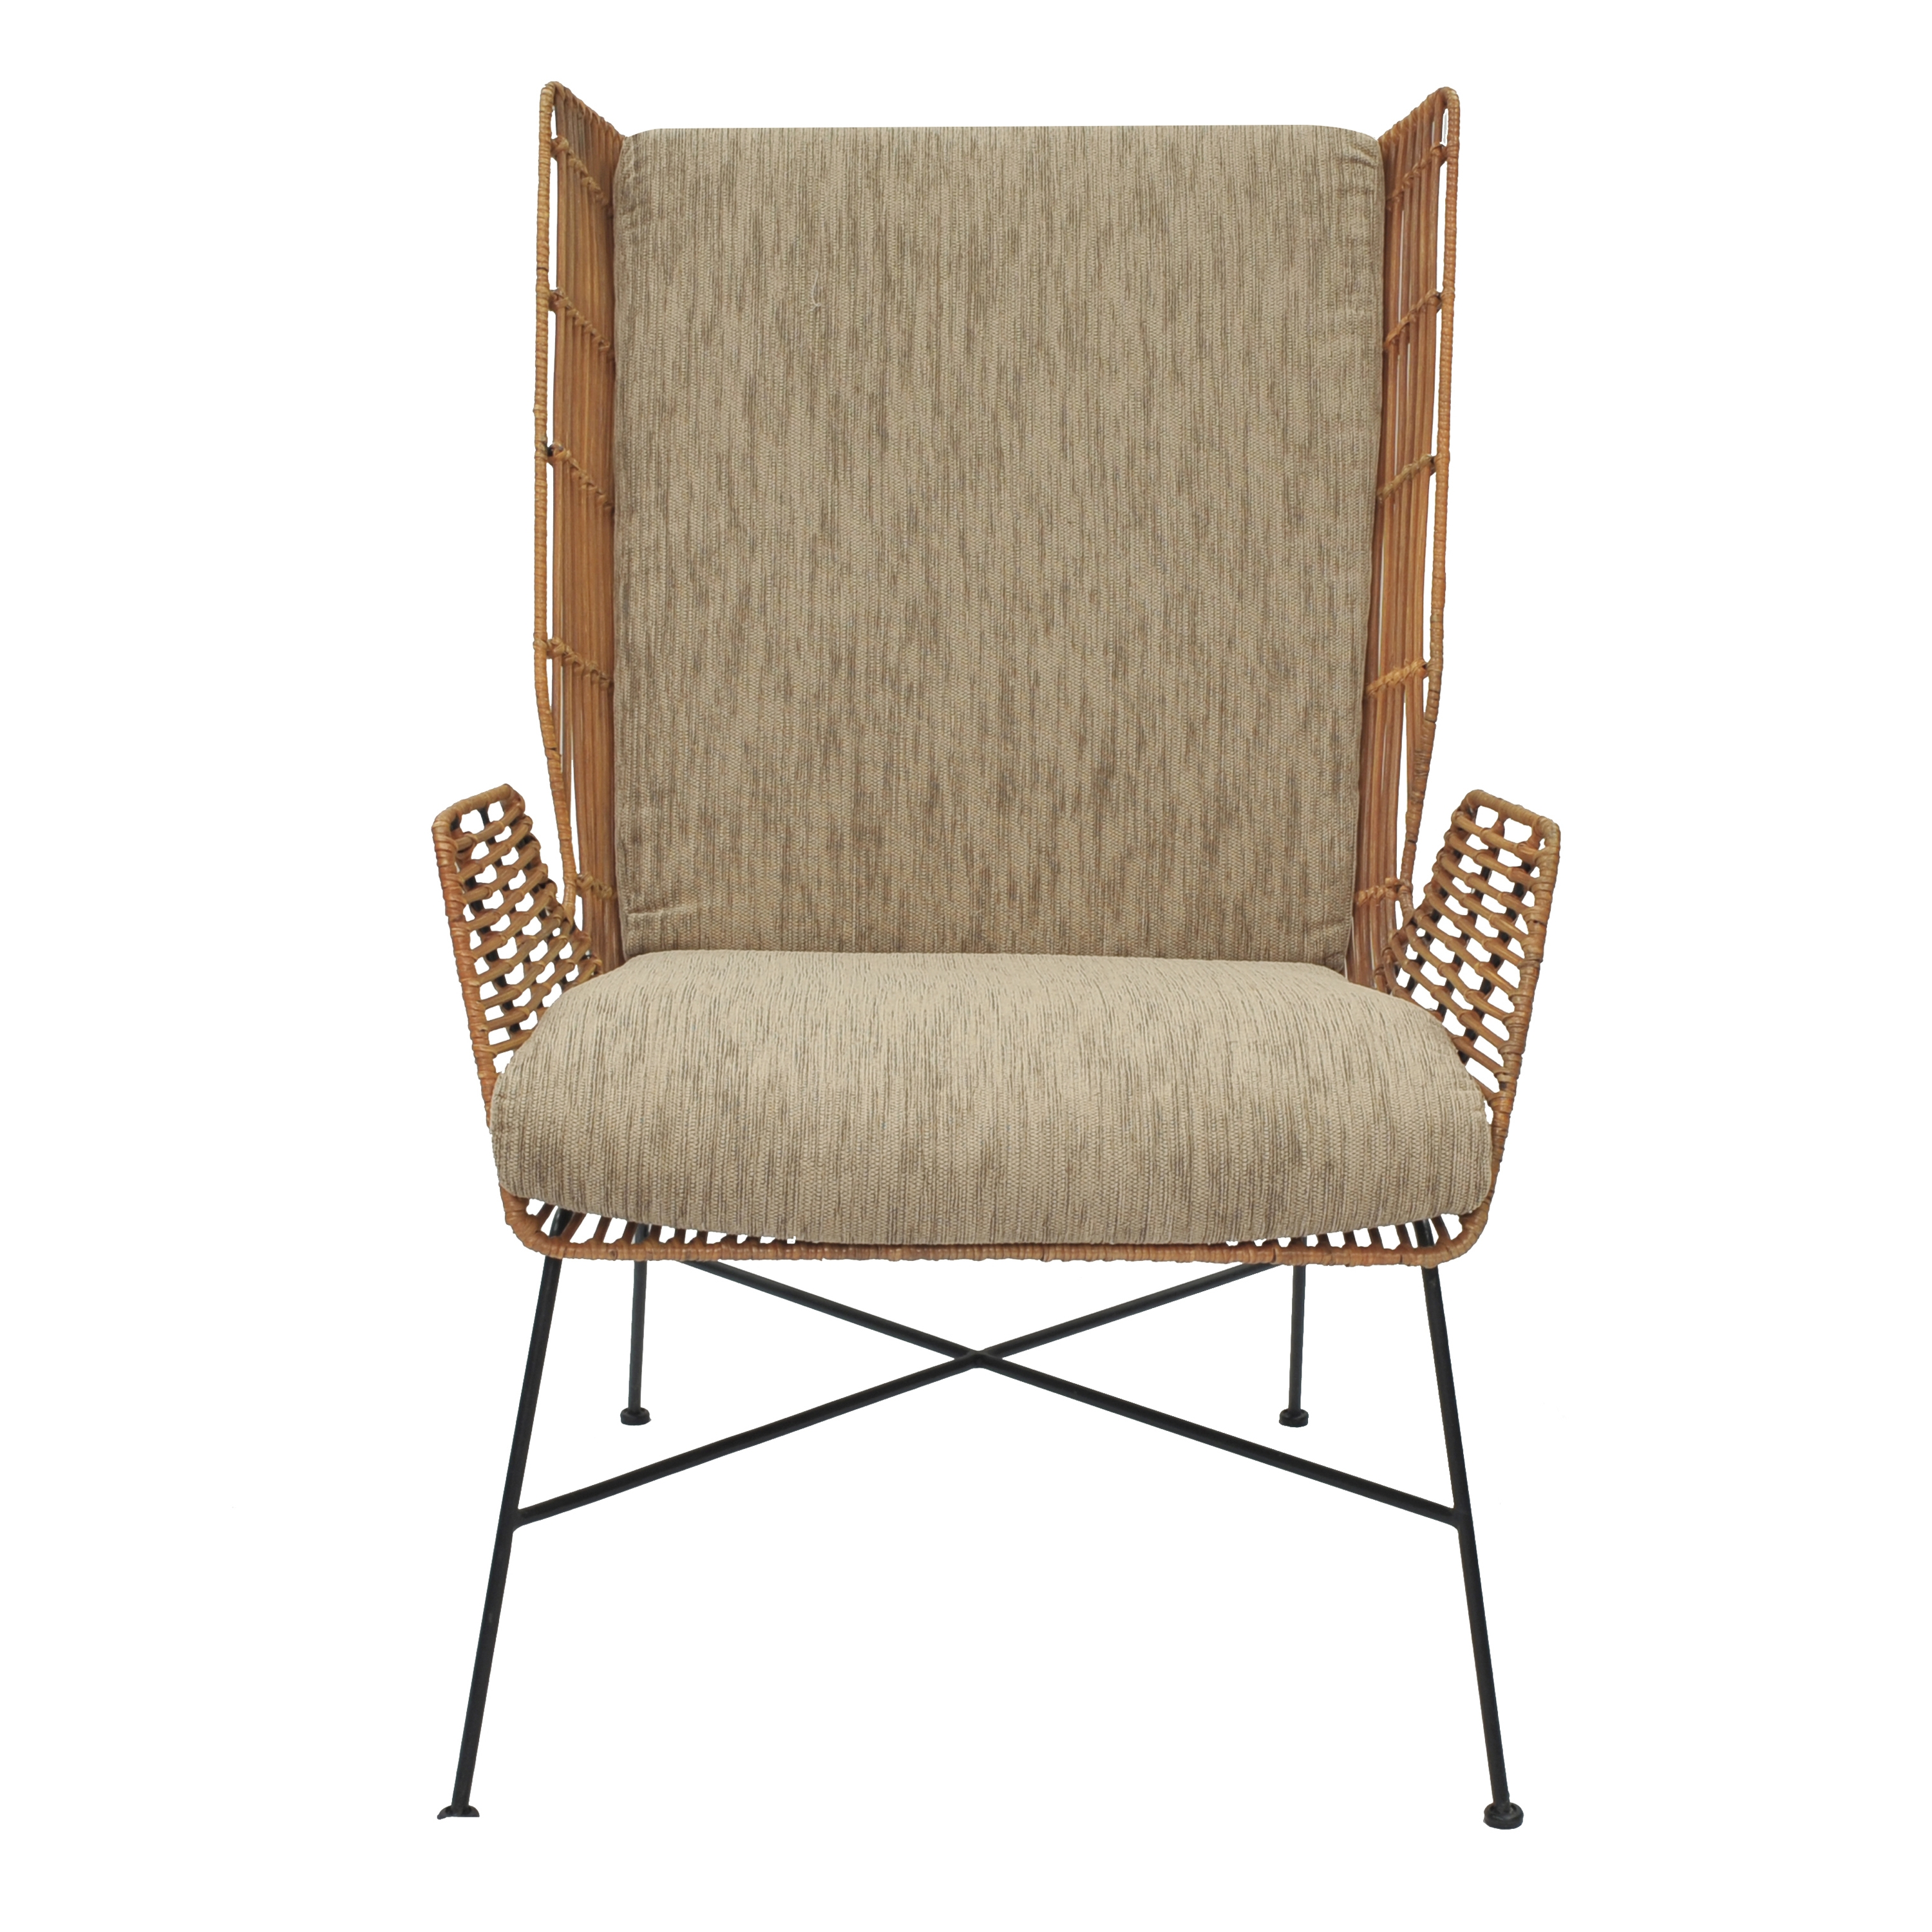 Rattan Yoga Chair: Wholesale Lifestyle Furnishings